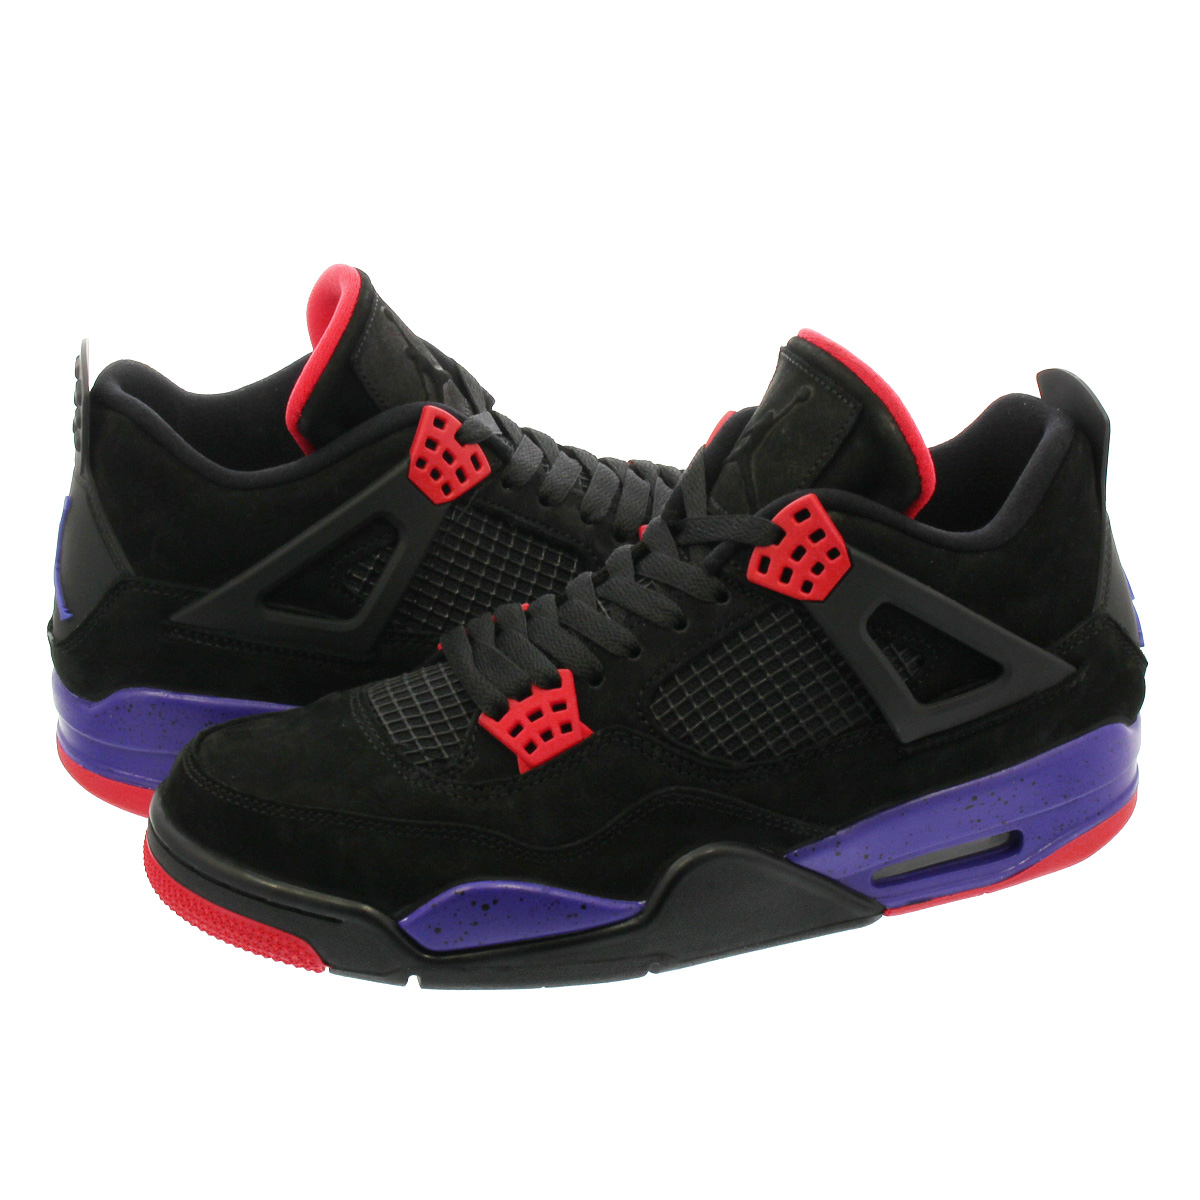 competitive price 8611c 67b96 NIKE AIR JORDAN 4 RETRO Nike Air Jordan 4 nostalgic NRG BLACK COURT PURPLE UNIVERSITY  RED aq3816-065